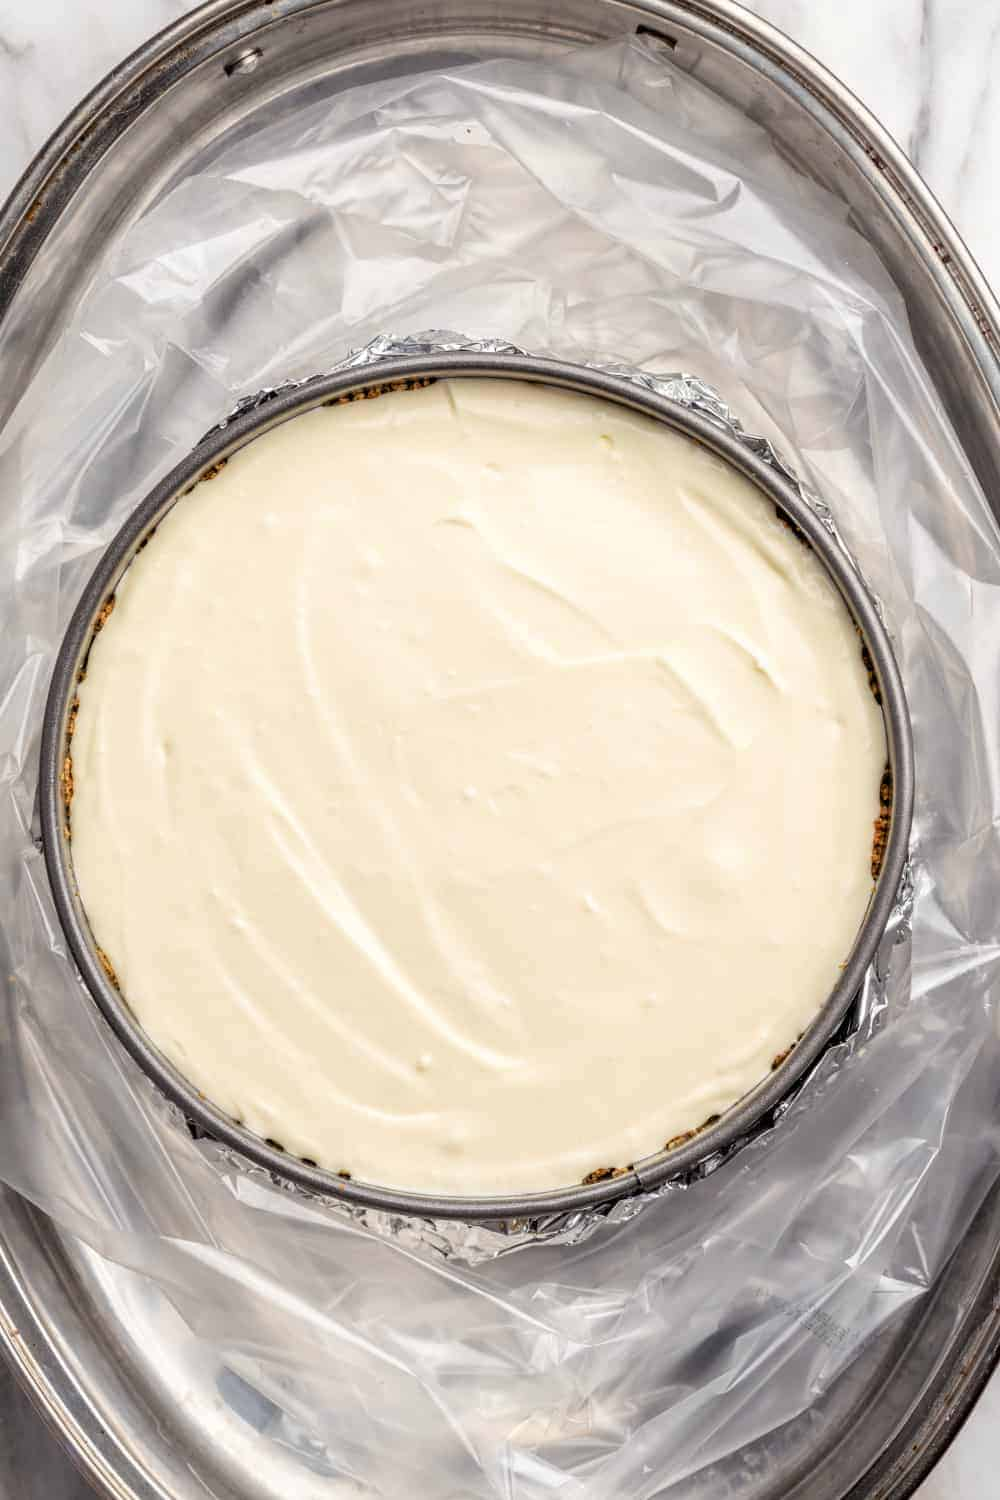 Vanilla cheesecake ready to bake